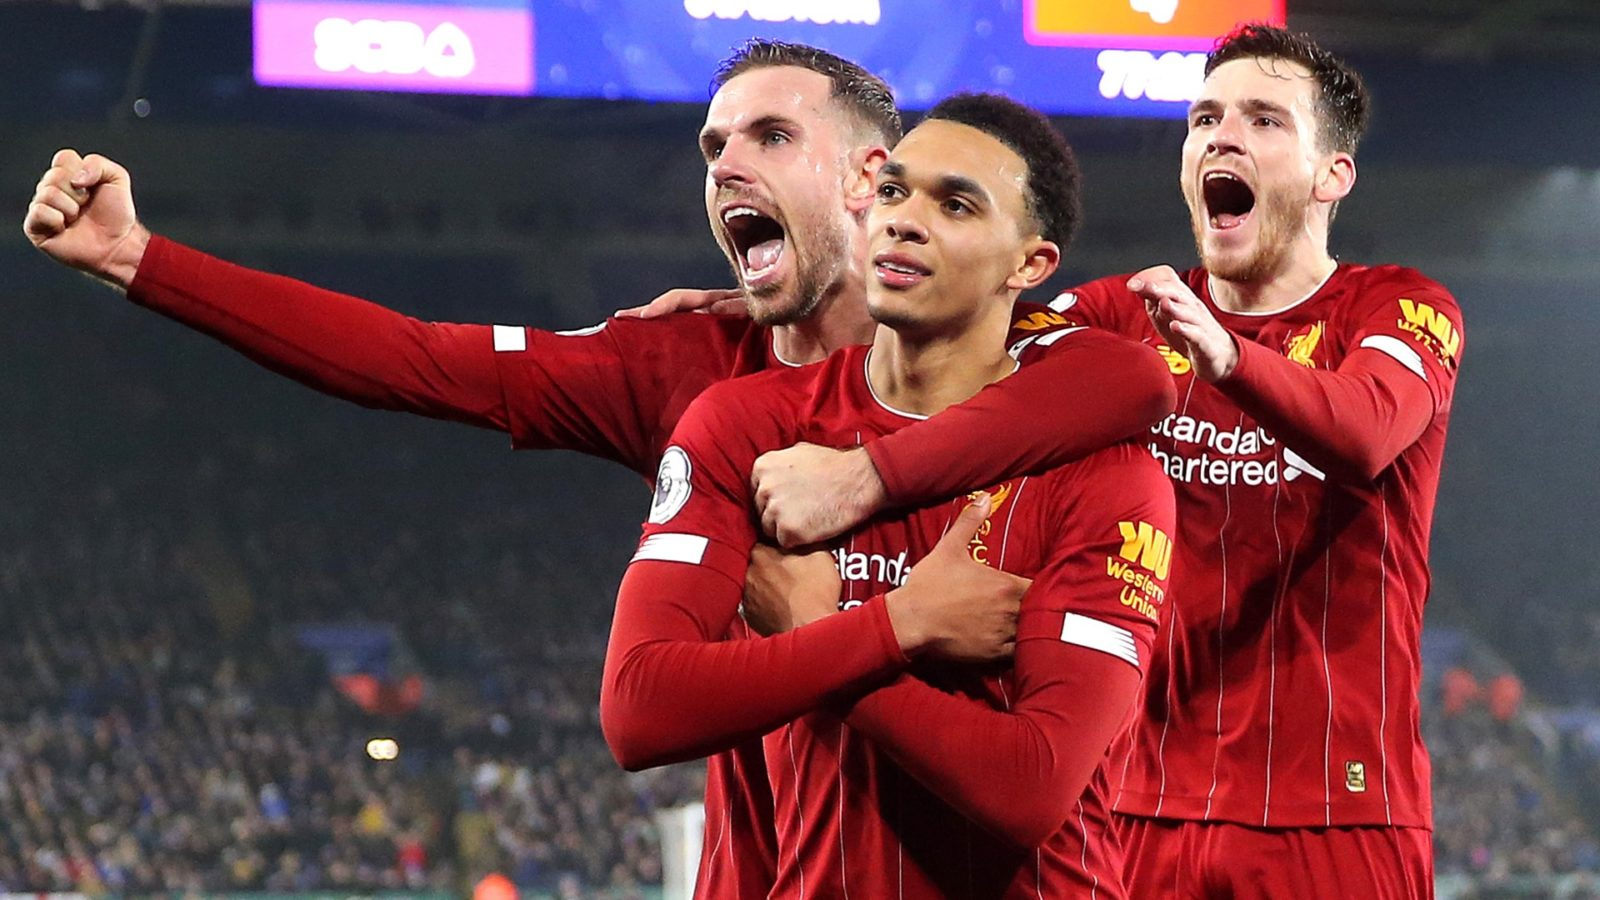 robertson-hails-liverpool's-maturity-as-they-'invest-their-lives-into-football'